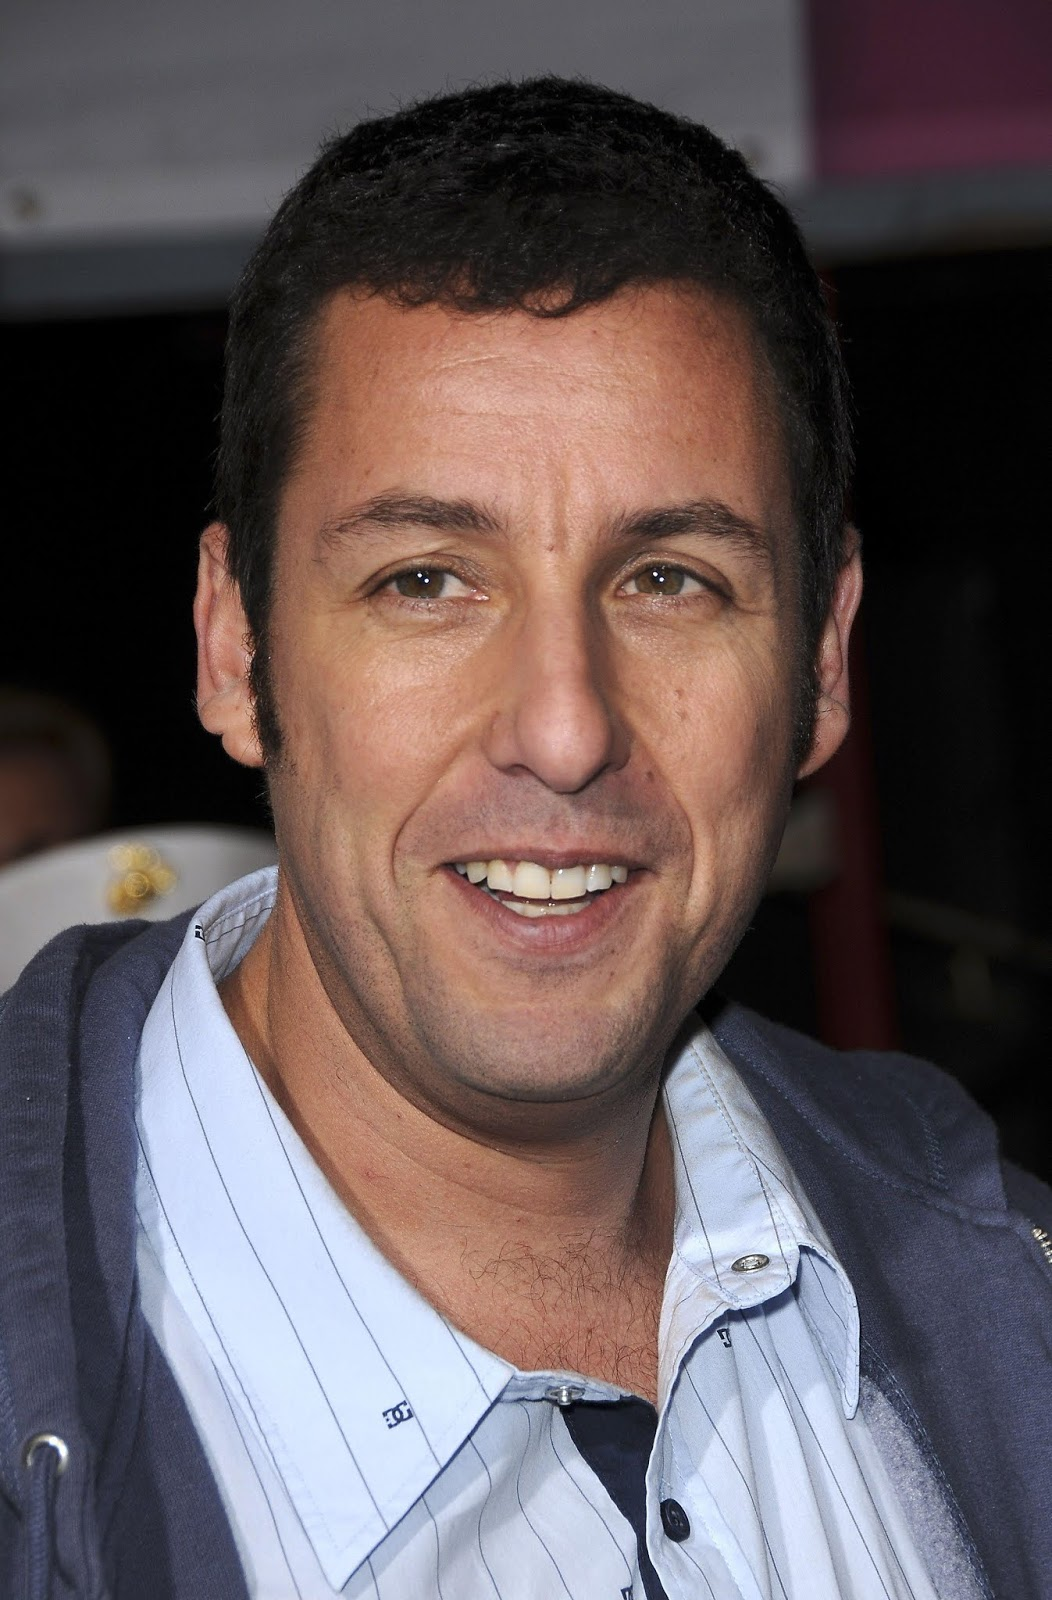 Adam Sandler Wallpapers hd image